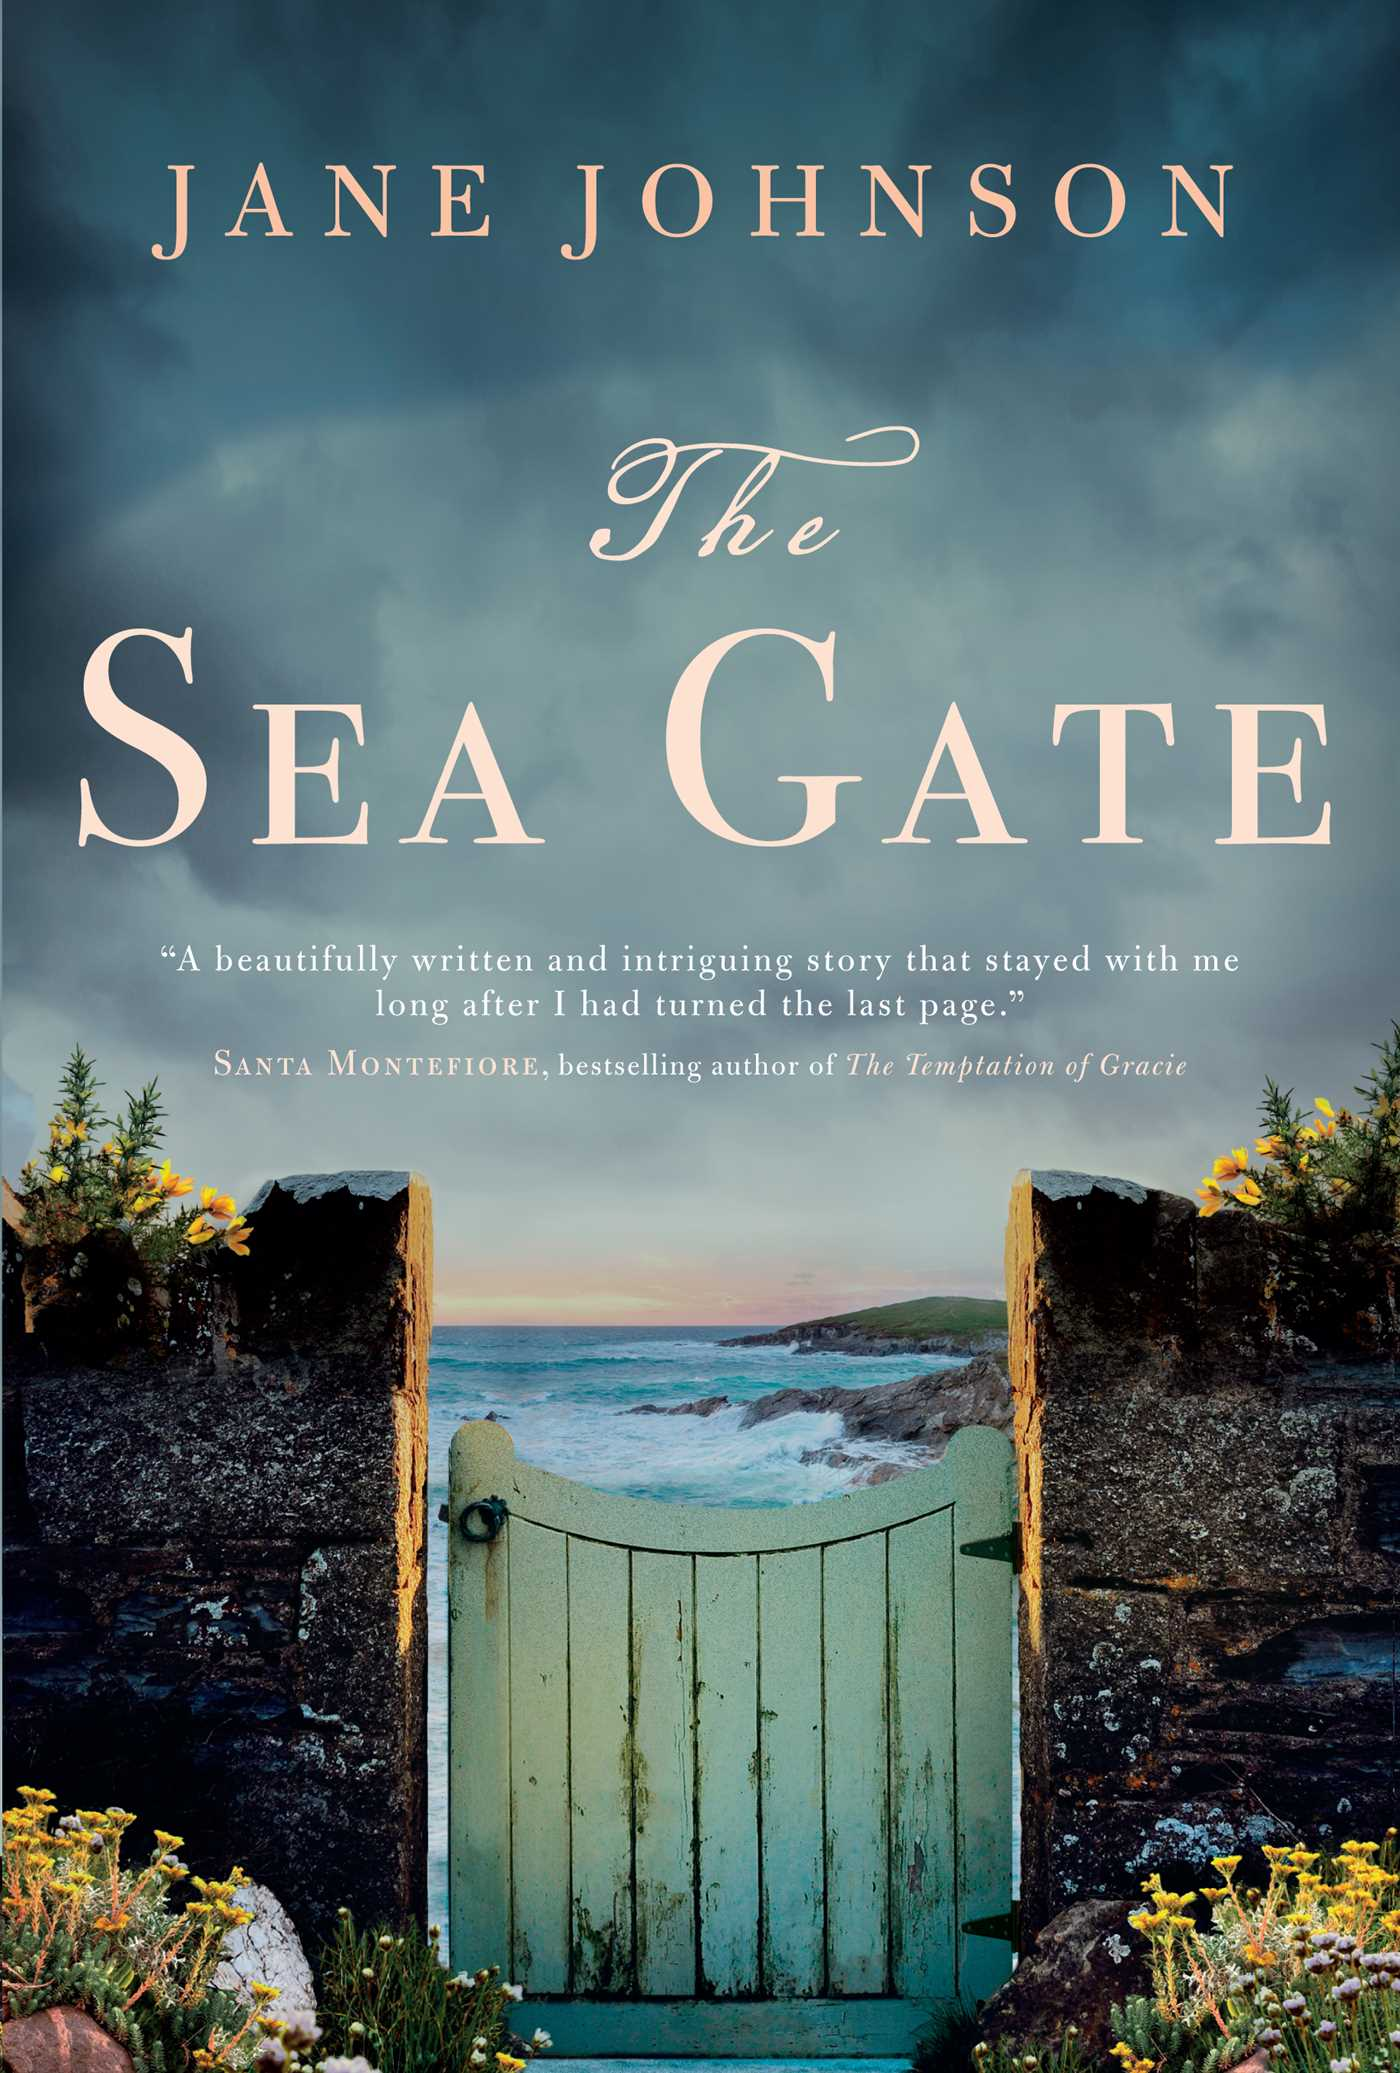 The Sea Gate by Jane Johnson